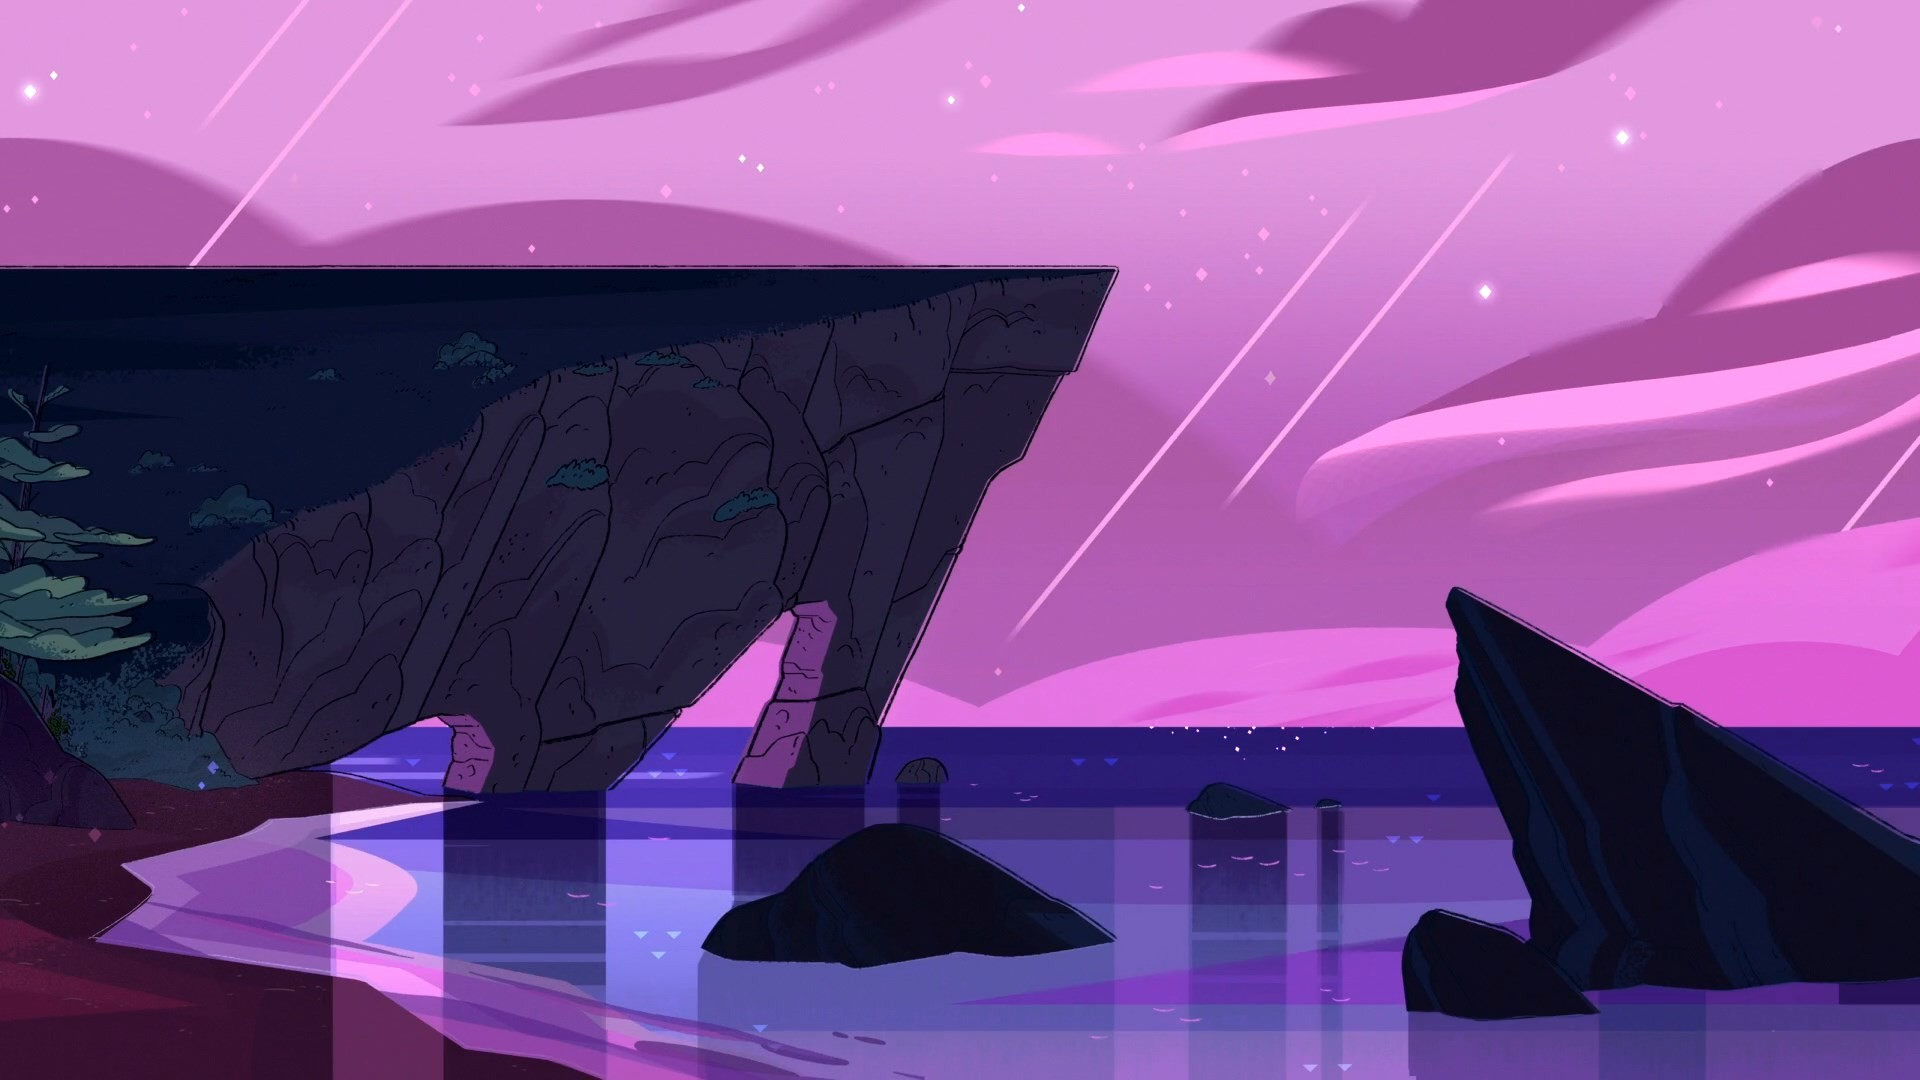 Hd steven universe wallpaper 78 images - Aesthetic wallpaper 1920x1080 ...